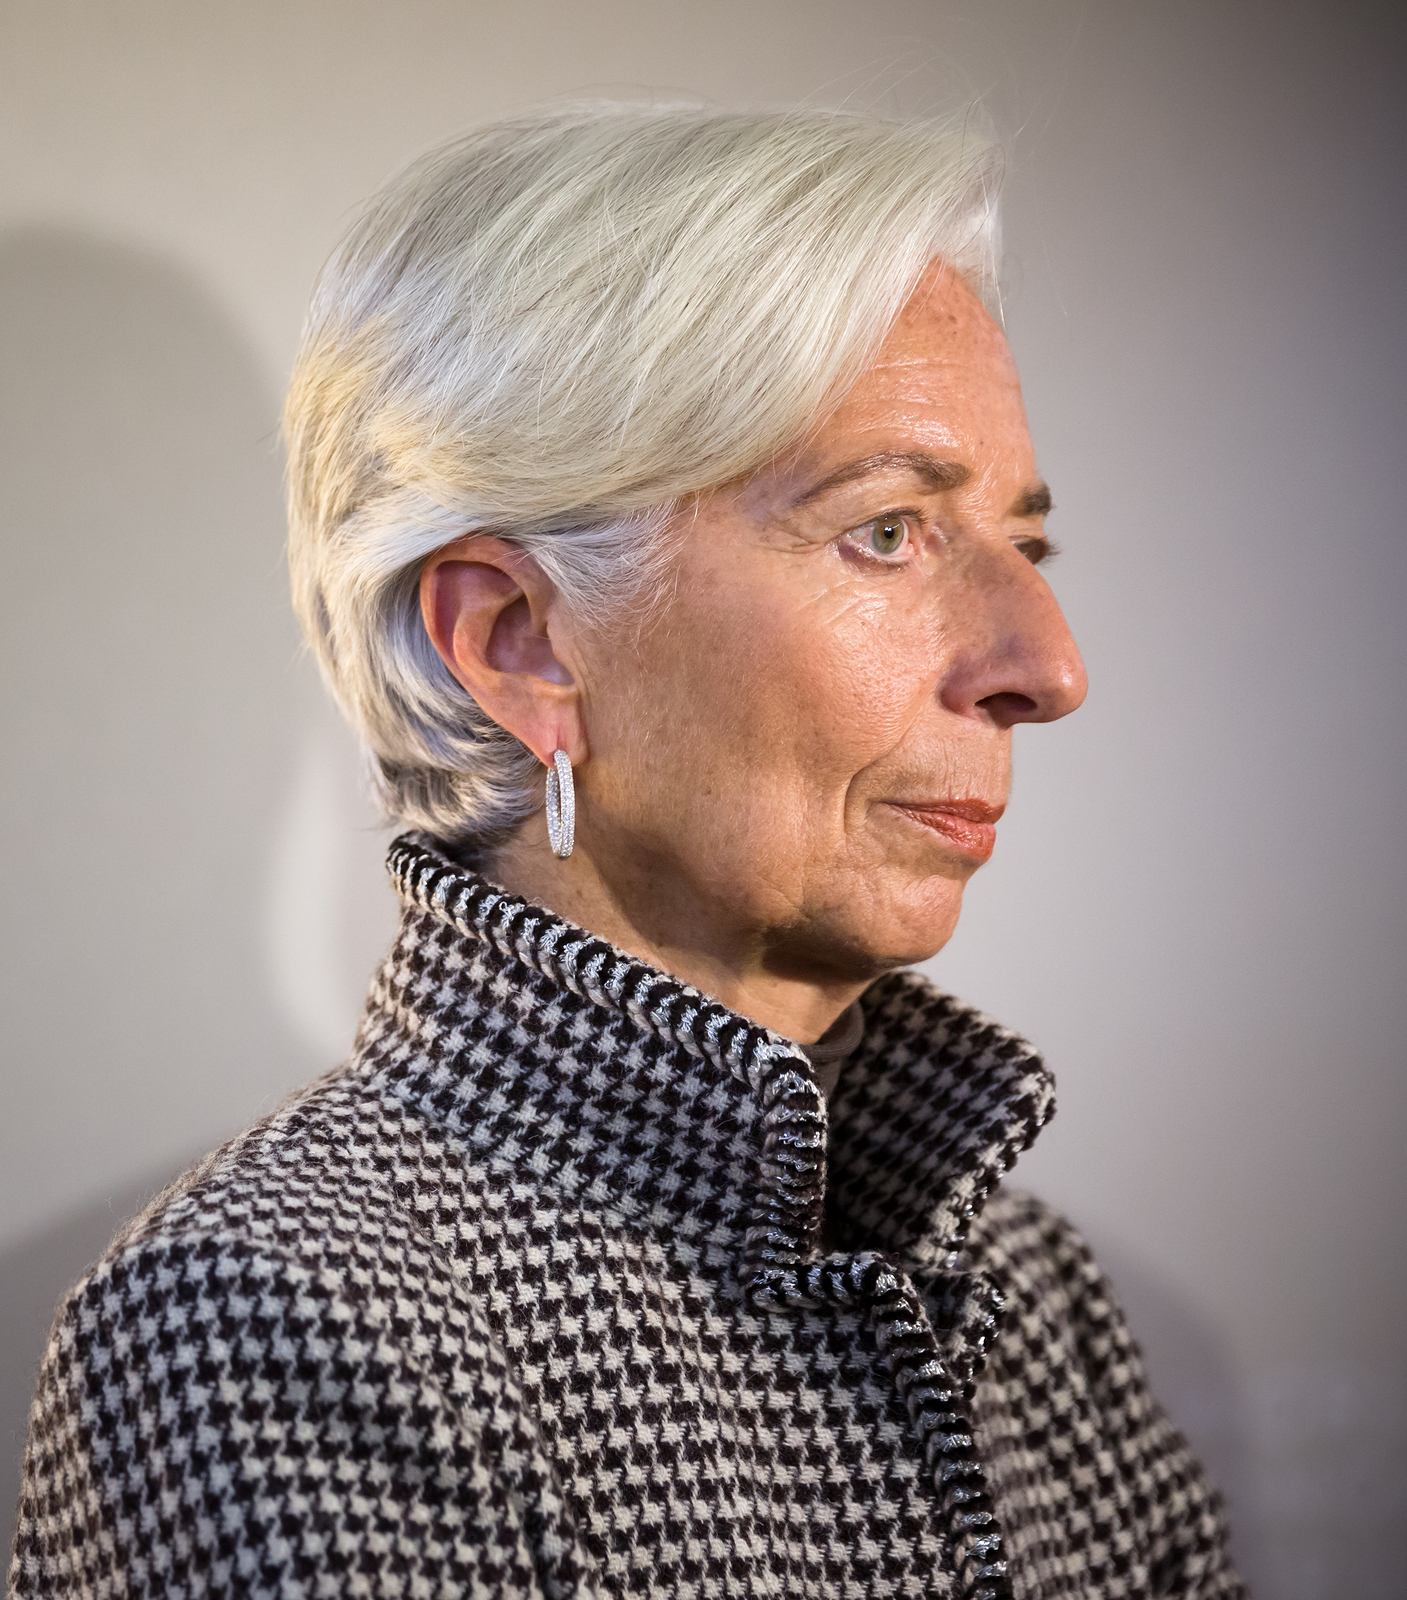 Christine Lagarde, IMF Head, says world would be worse off had central banks not have pushed negative rates